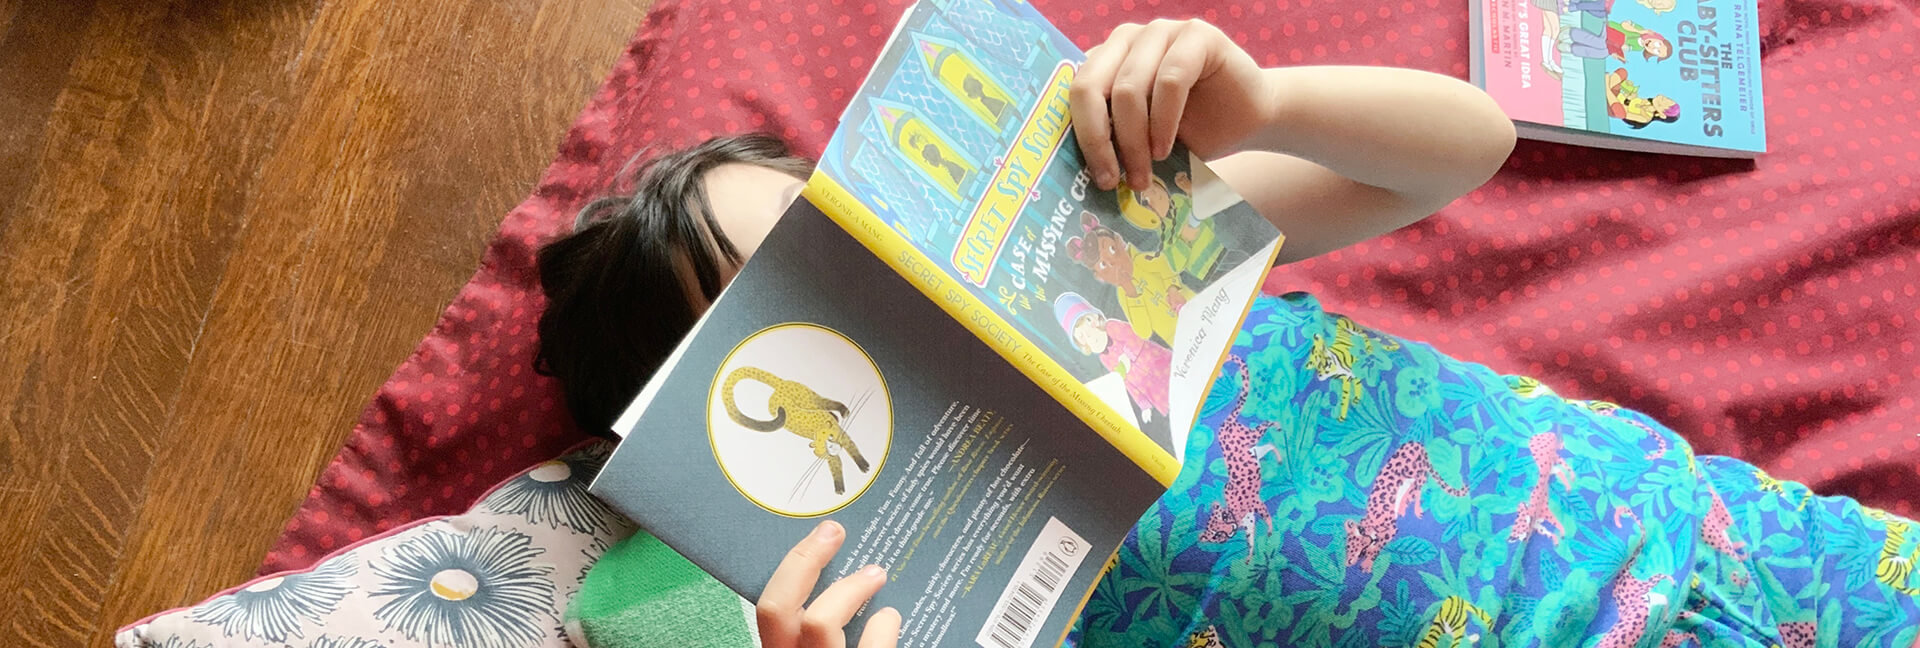 Girl holding book over her face wearing a Hatley sleepwear set.